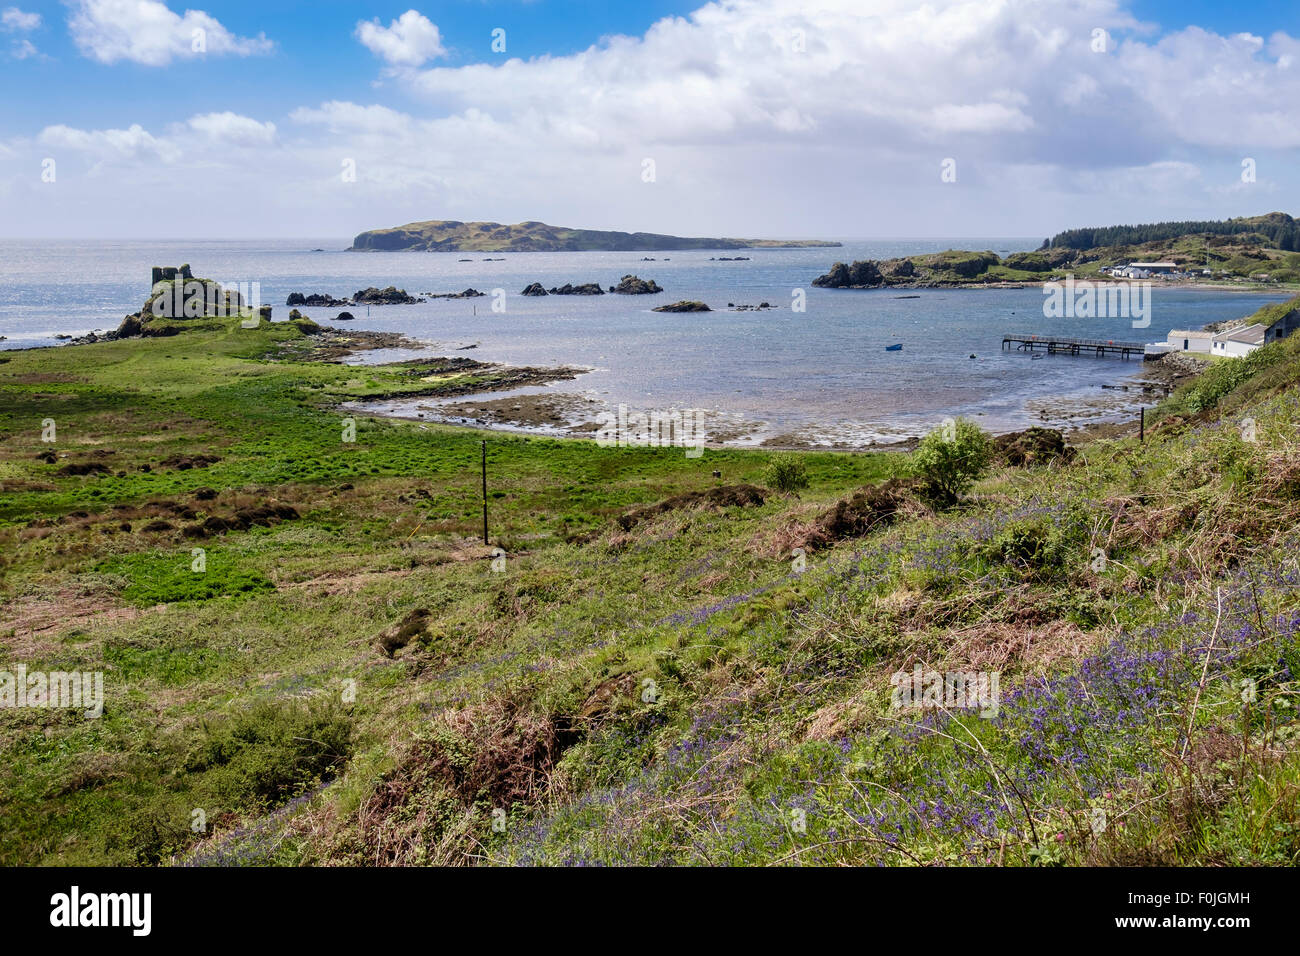 Dunyvaig castle overlooking a bay on southern coast with Texa island offshore. Lagavulin Isle of Islay Inner Hebrides - Stock Image